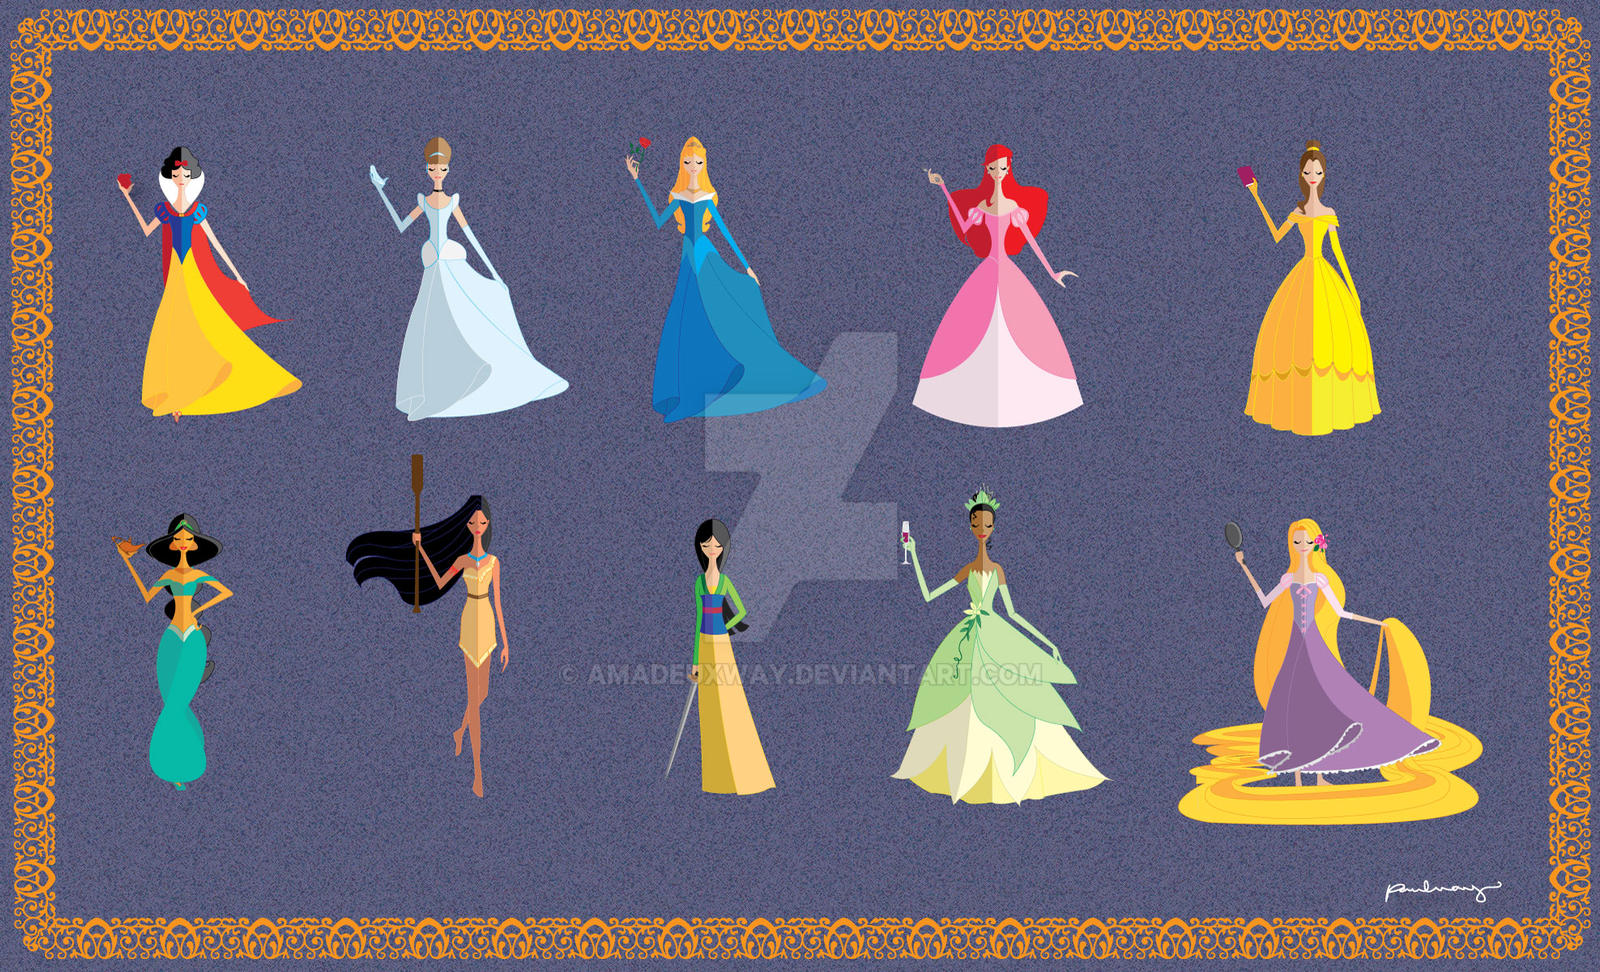 Origami Disney Princesses by AmadeuxWay